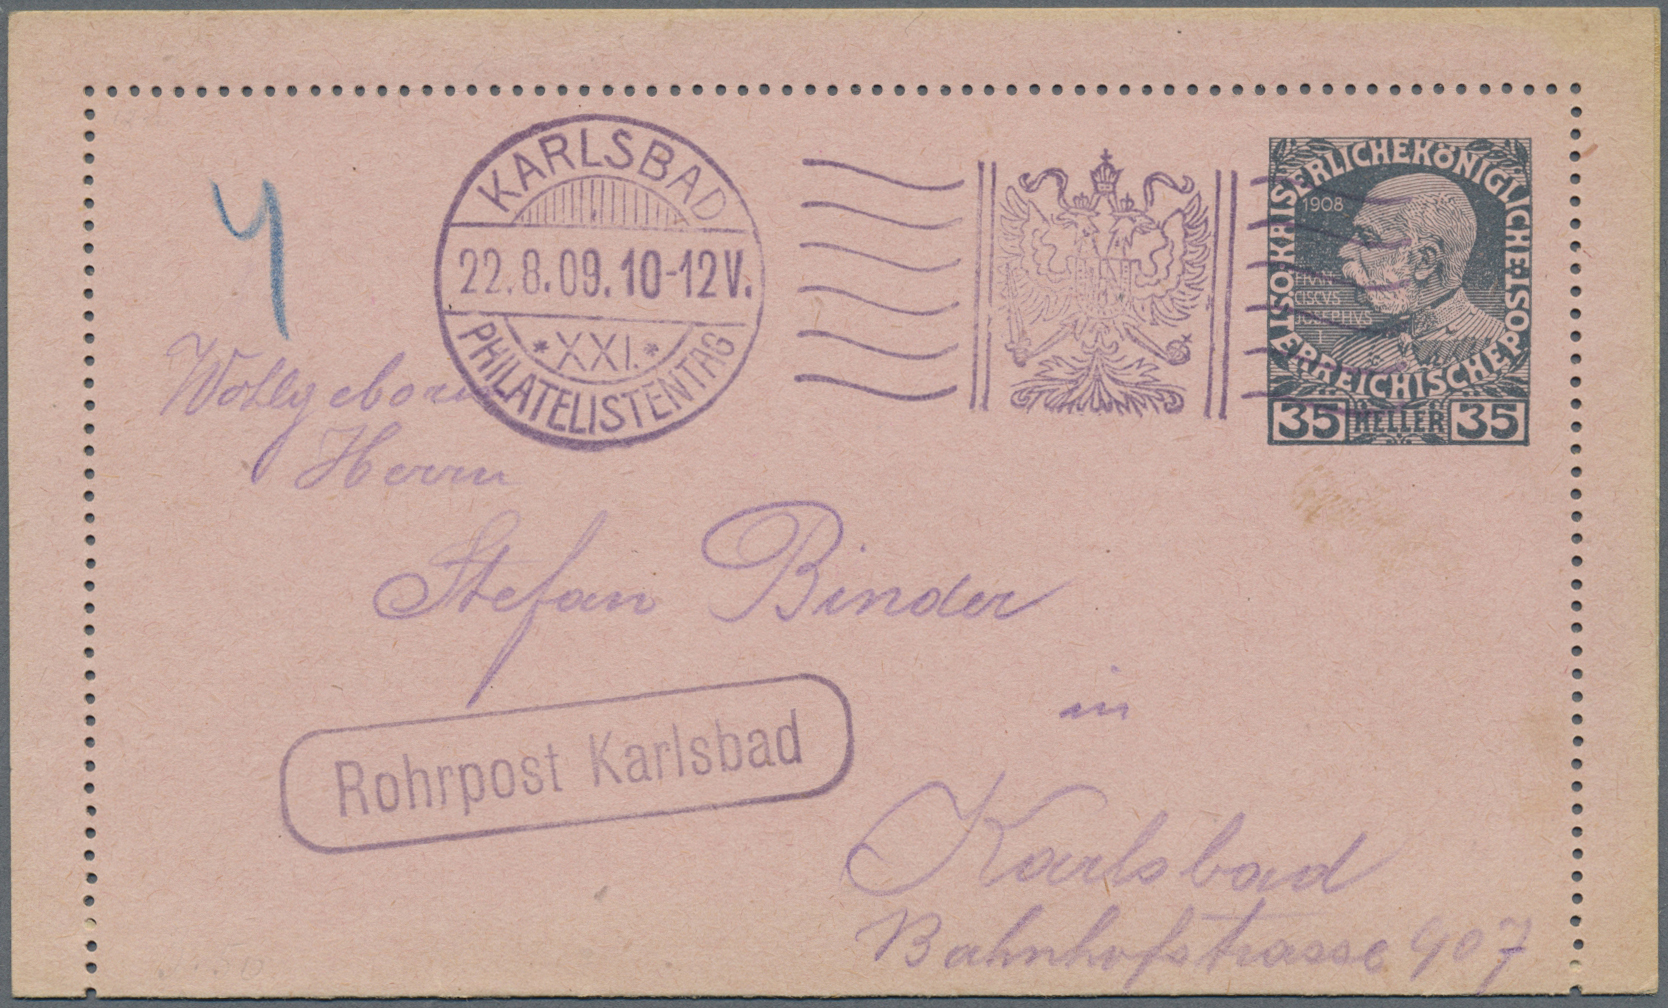 Lot 18238 - österreich - ganzsachen  -  Auktionshaus Christoph Gärtner GmbH & Co. KG Single lots Philately Overseas & Europe. Auction #39 Day 4